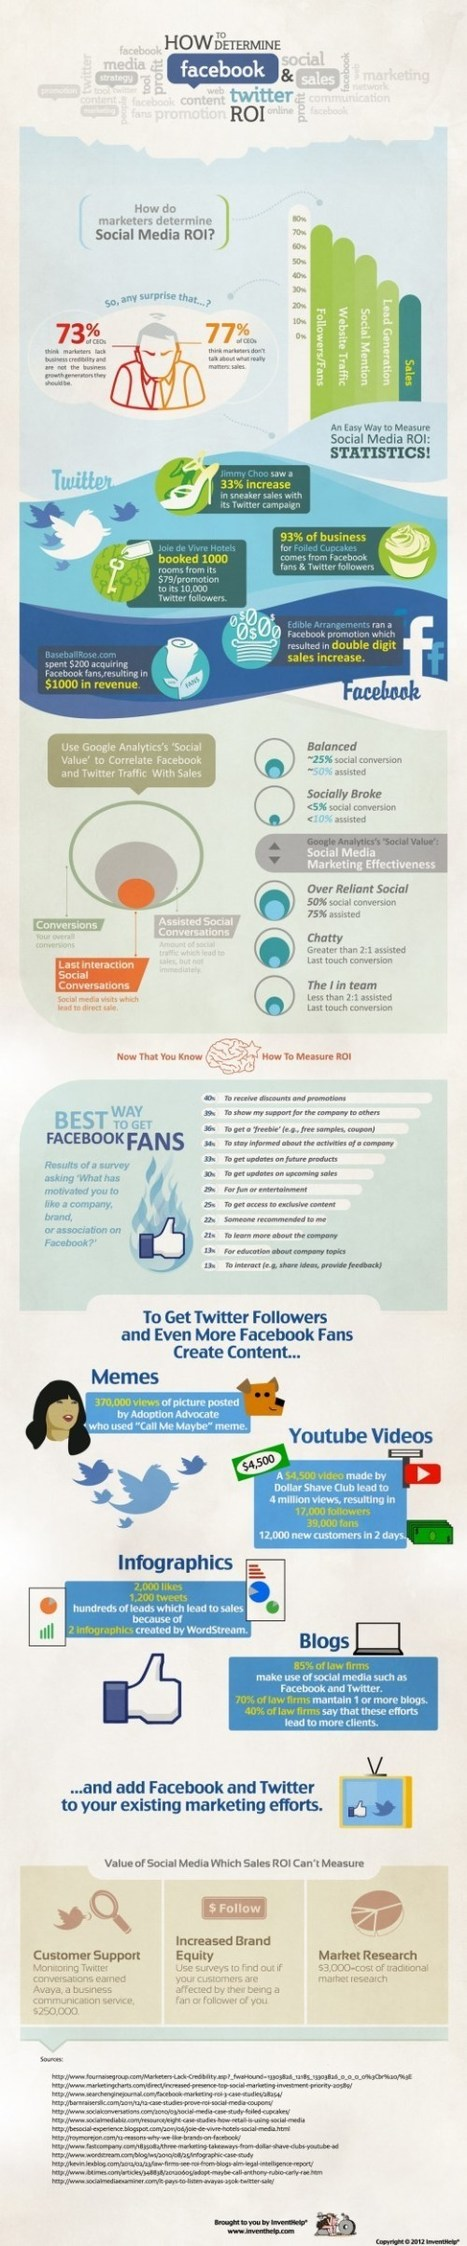 Some More Thoughts On Social Media and ROI (Infographic)   Social Media ROI: articles and stats   Scoop.it